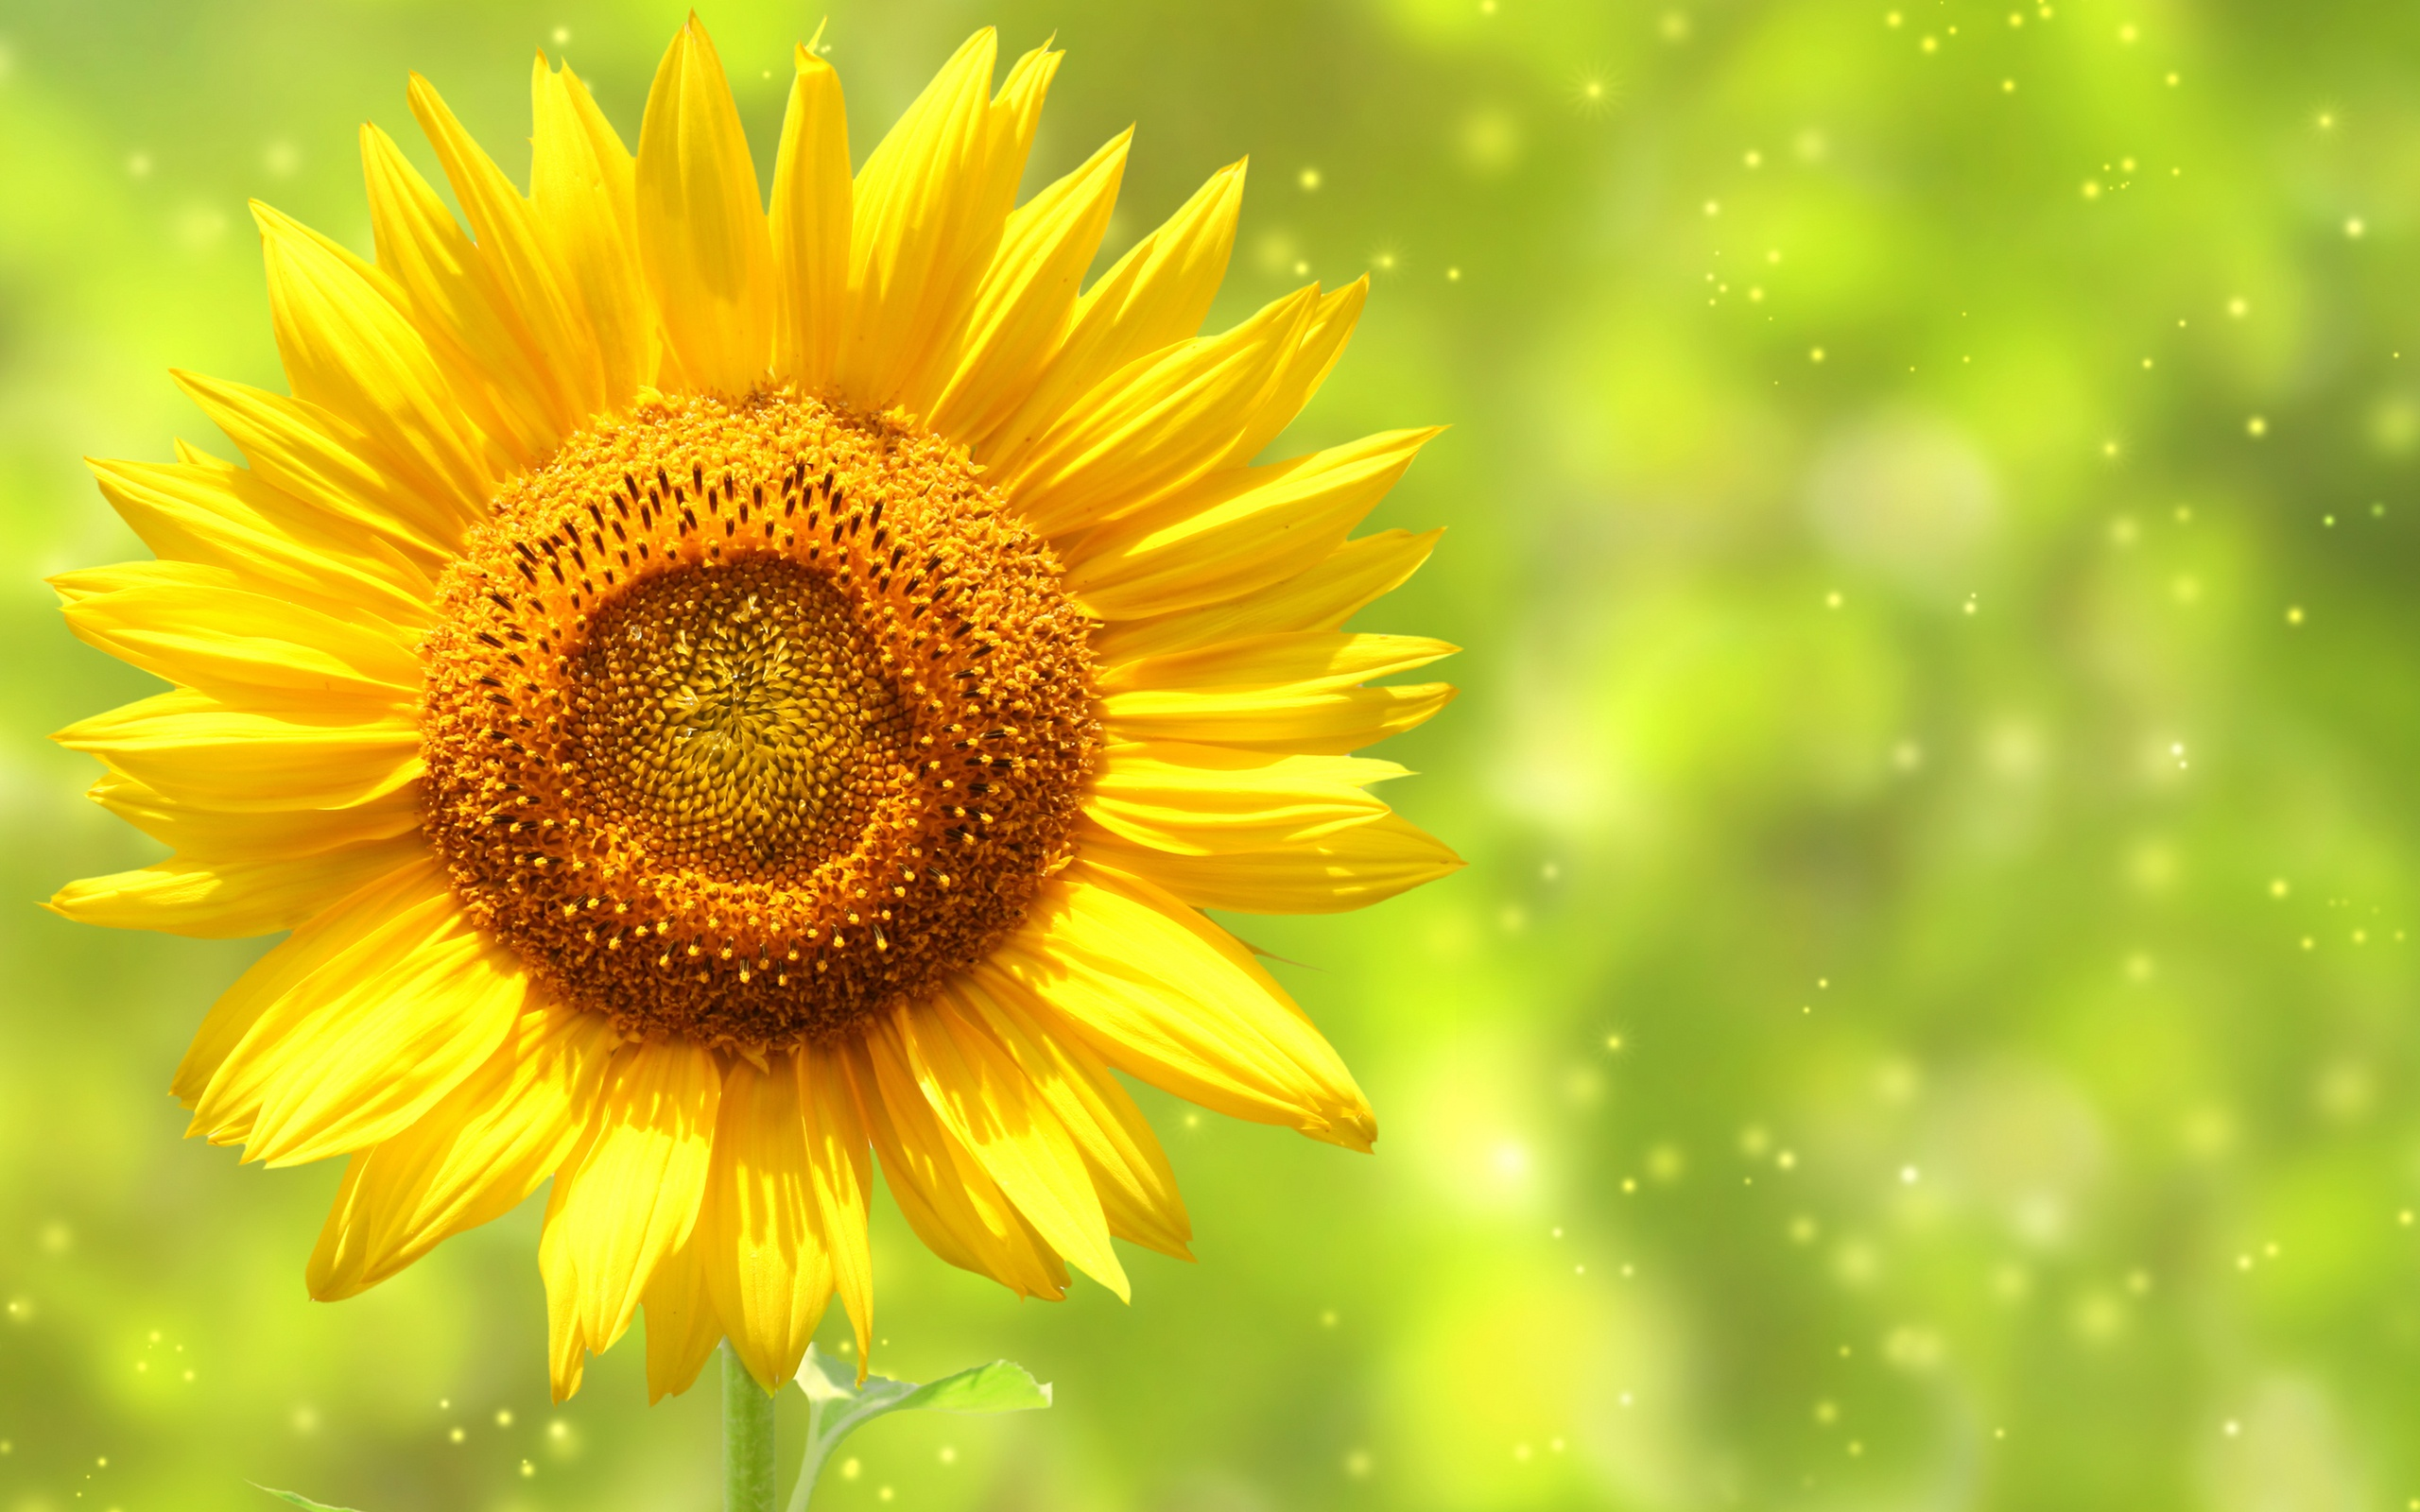 Pretty Sunflower Wallpaper